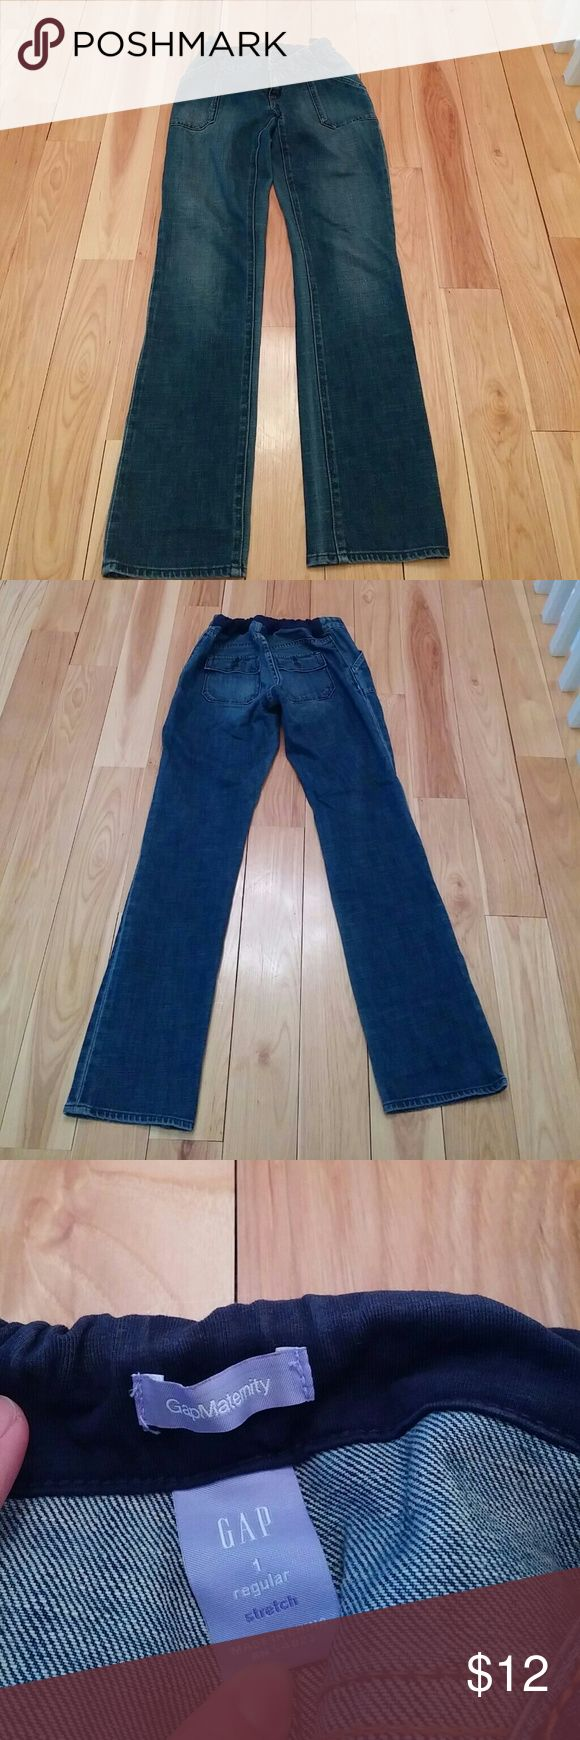 "Women's Maternity Jeans GAP maternity jeans. Straight leg, 31"" Inseam. Button and zip front closure. Adjustable waistband. Soft denim. Excellent used condition. Smoke free home. GAP  Jeans Straight Leg"